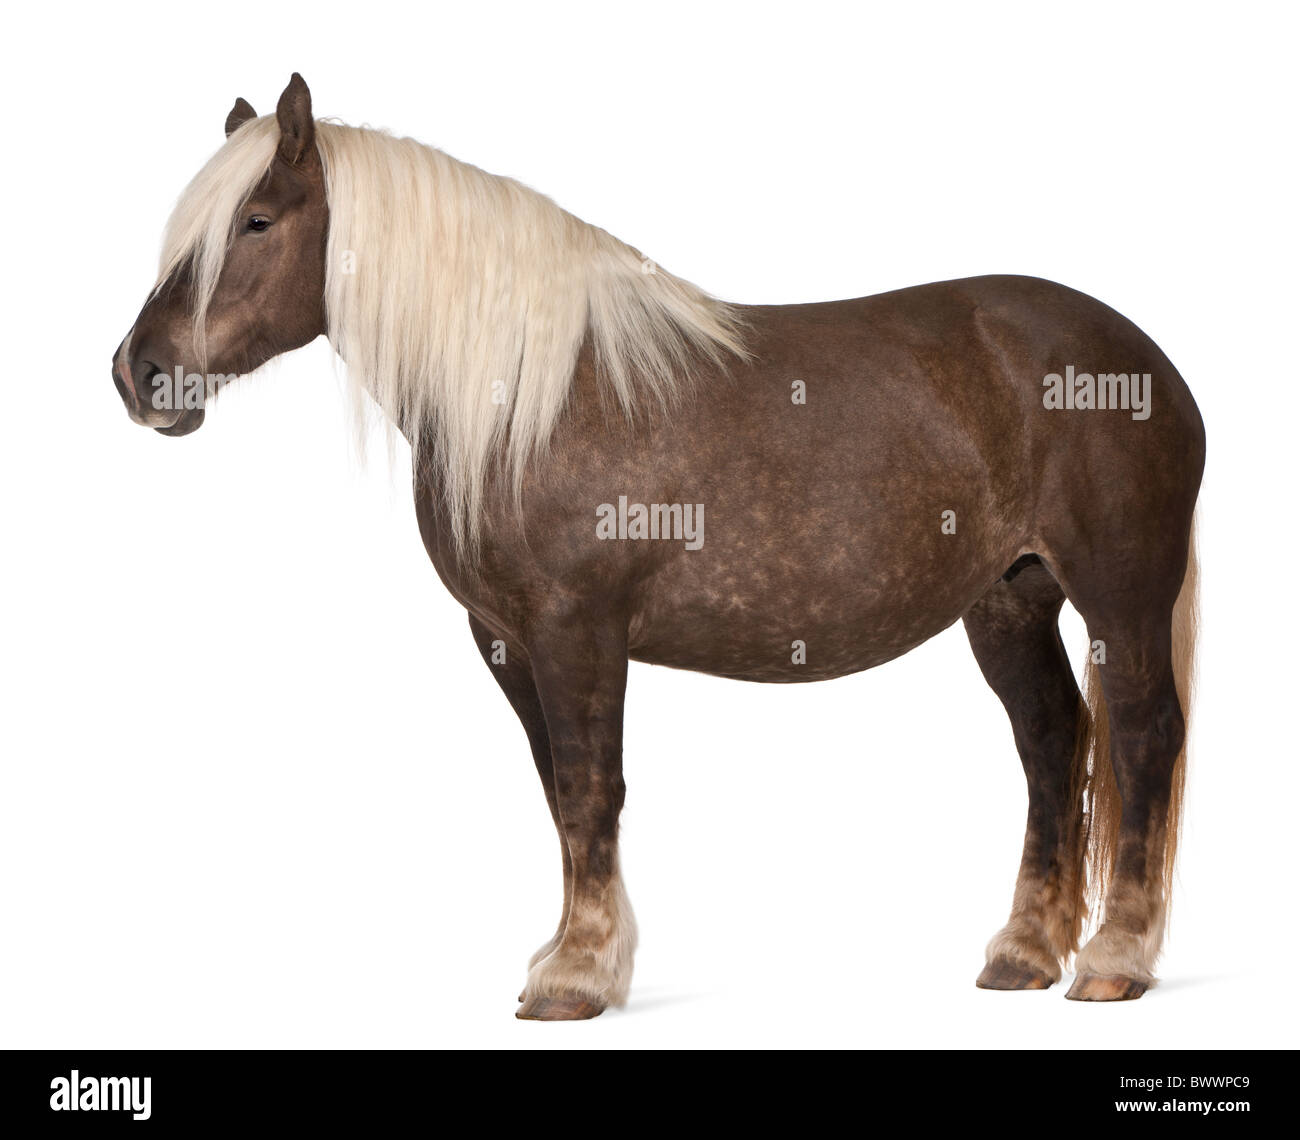 Comtois horse, a draft horse, Equus caballus, 10 years old, standing in front of white background Stock Photo